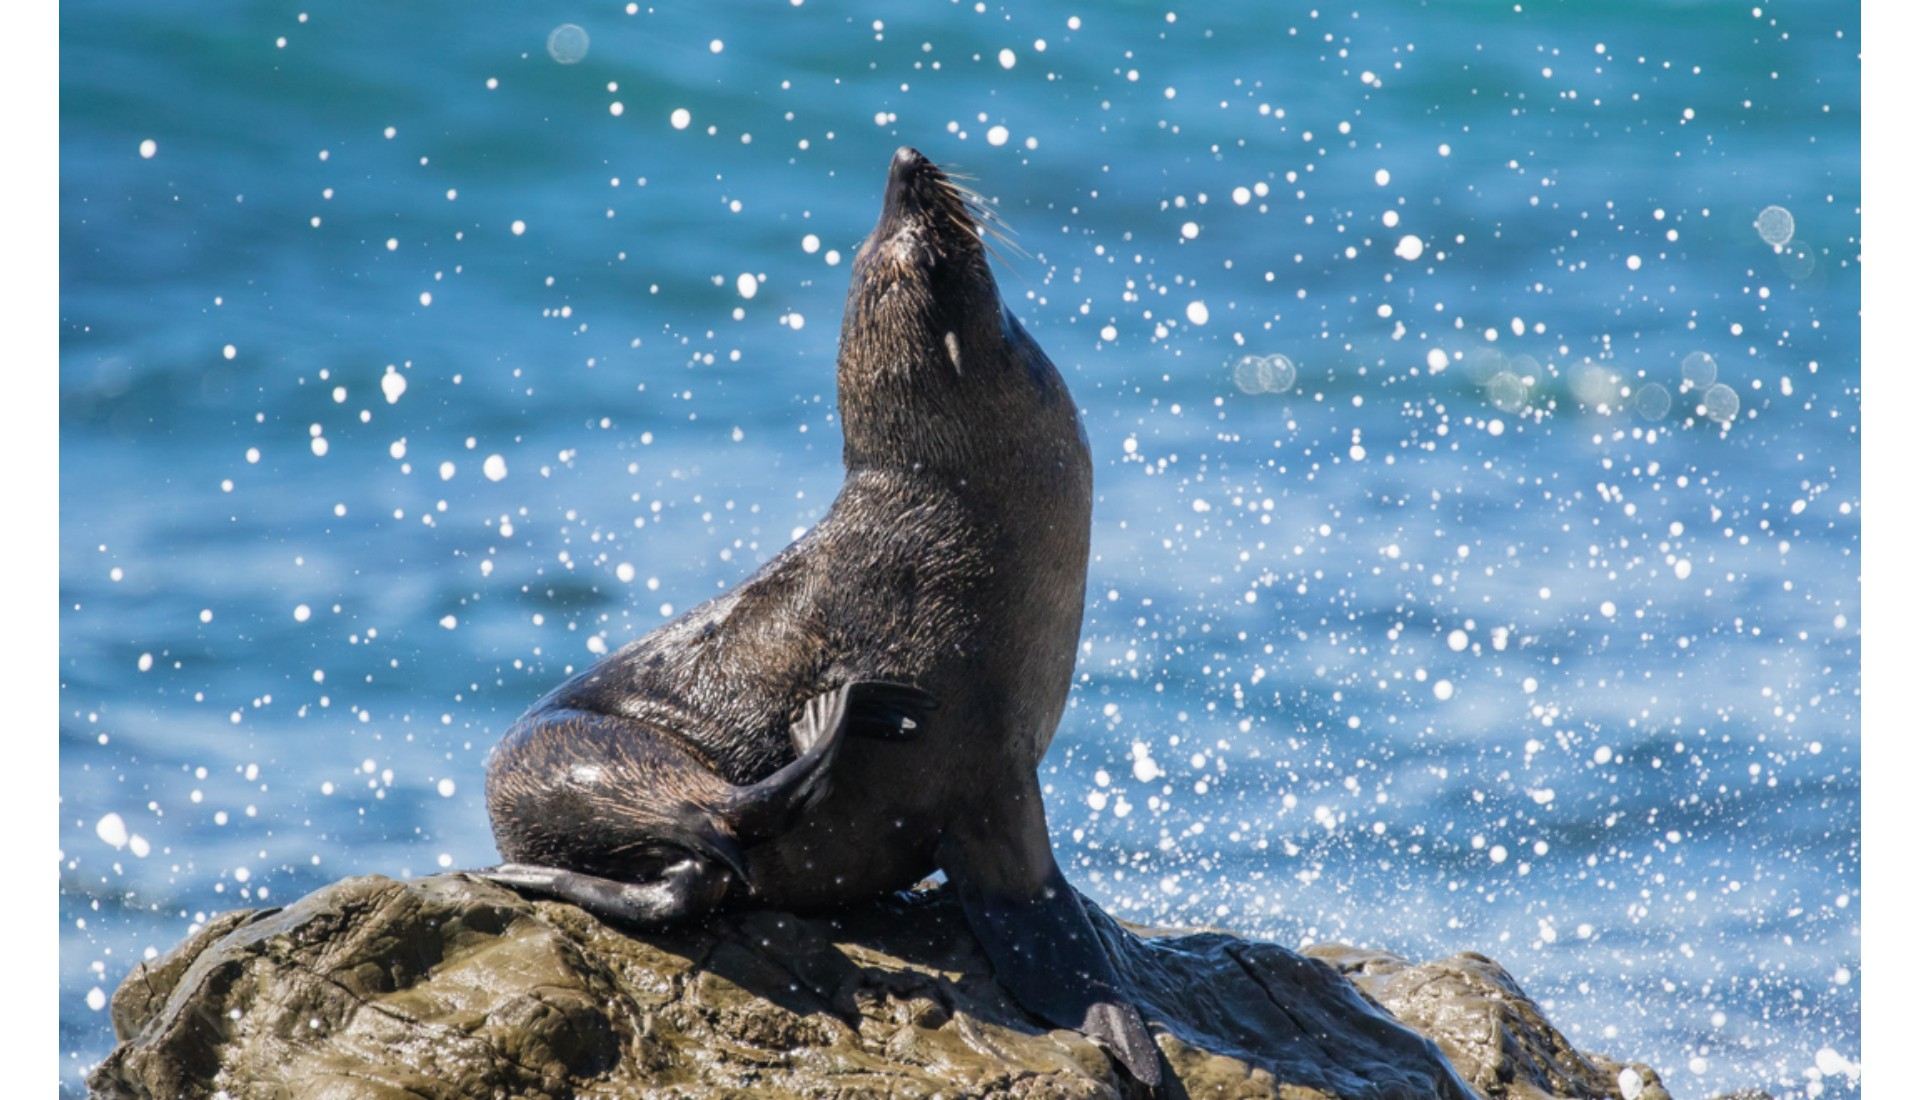 Sea Lion, Kaikoura, NZ, 2015